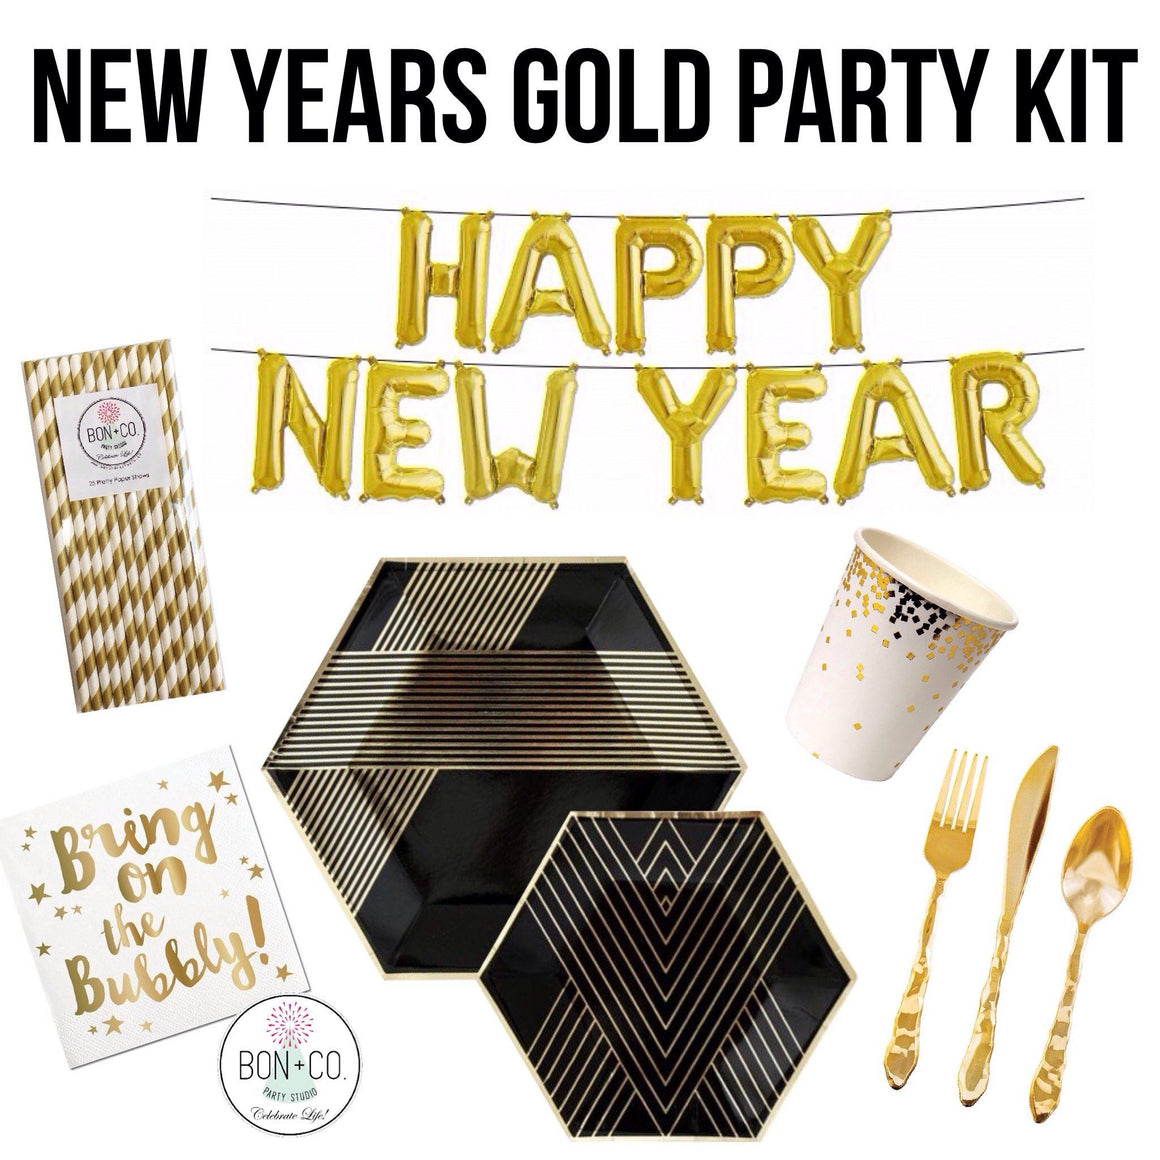 PARTY KIT - NEW YEARS GOLD